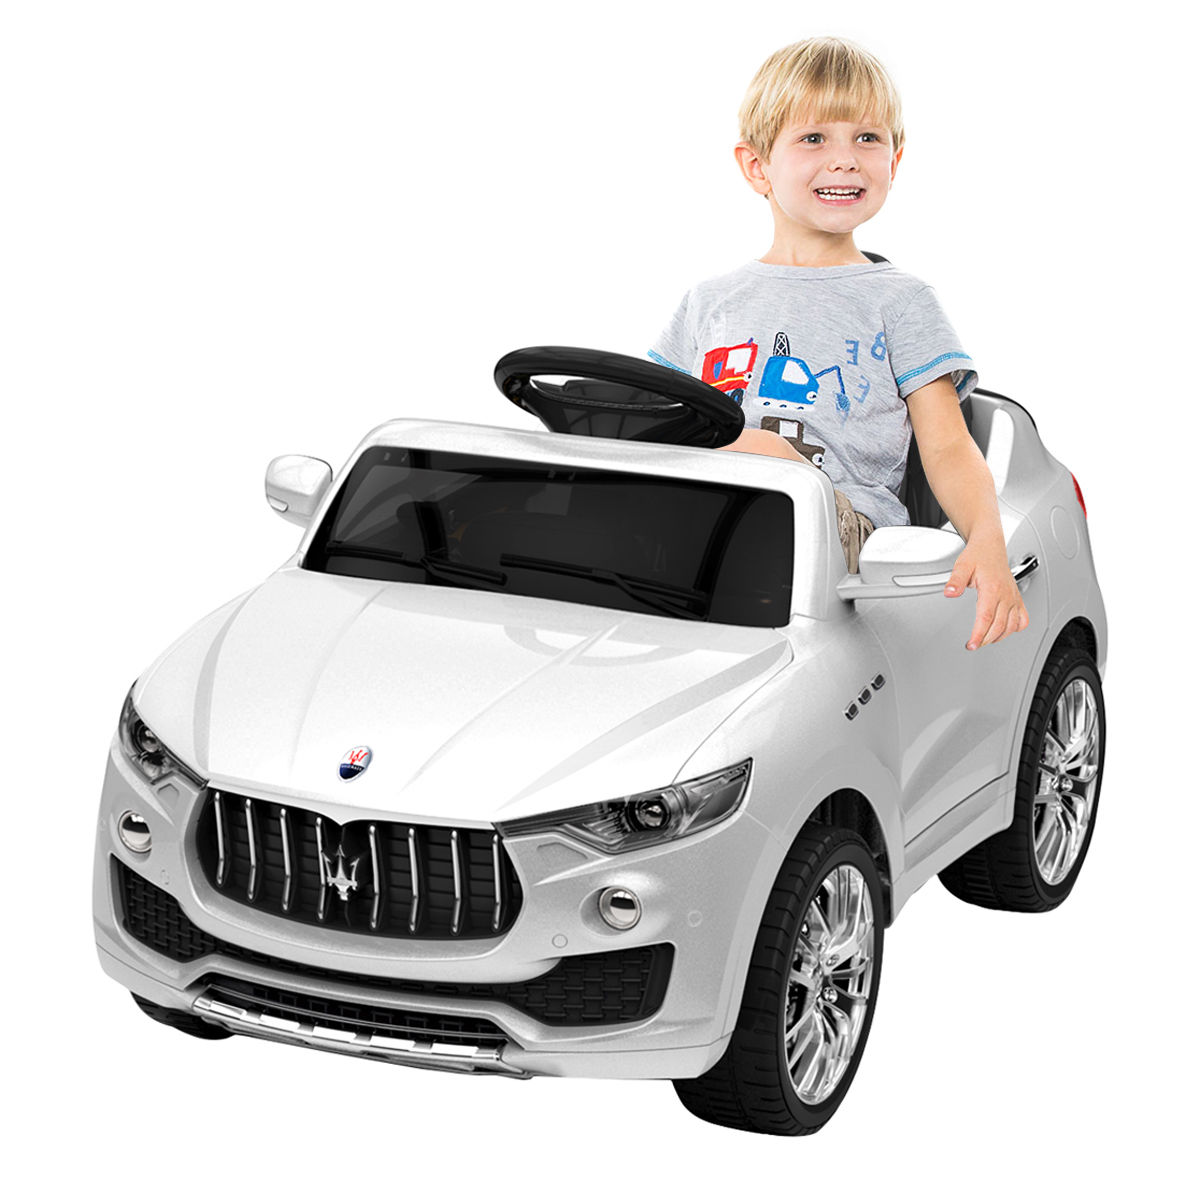 Costway 6V Licensed Maserati Kids Ride On Car RC Remote Control Opening Doors MP3 Swing White